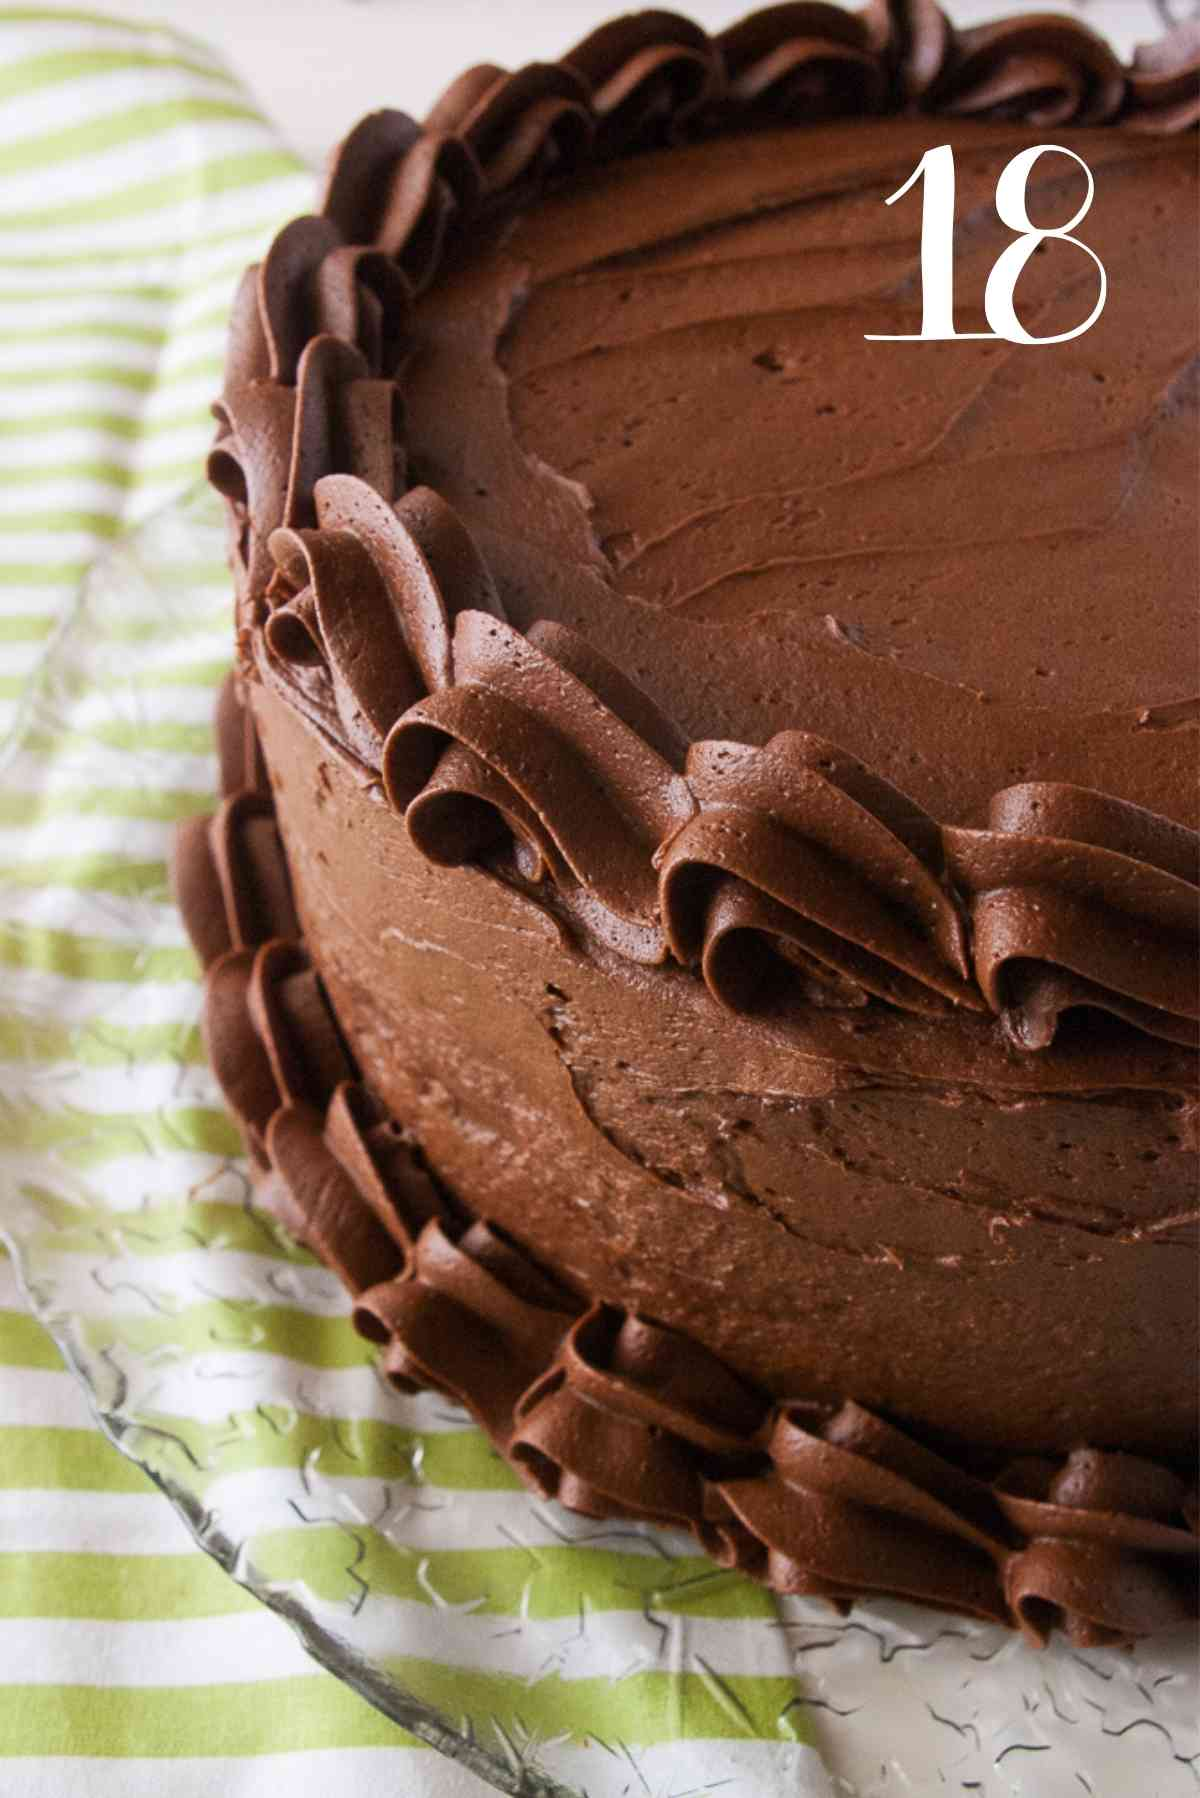 Cake frosted with chocolate frosting.